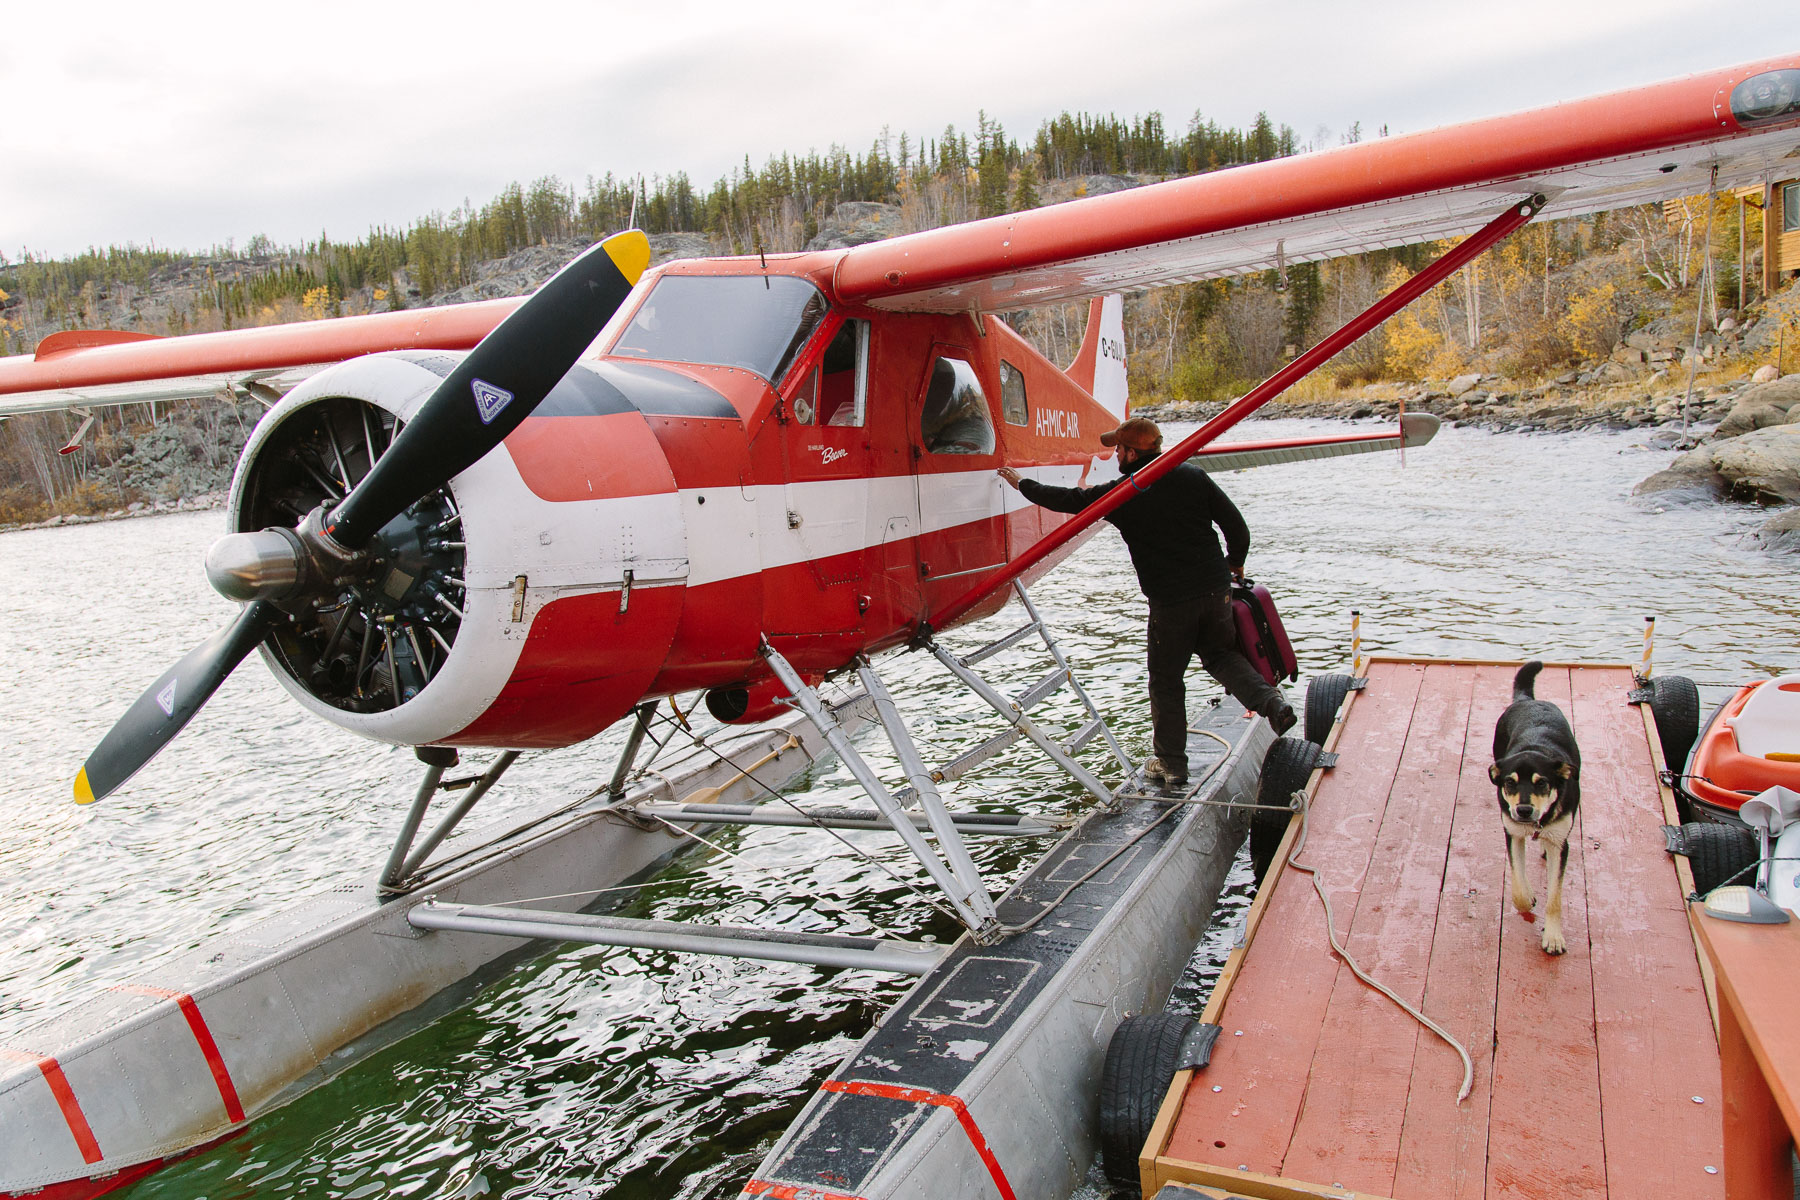 AHMIC Air pilot John Daley secures the hatch on his 1957 DeHavilland Beaver seaplane at the Yellow Dog Lodge marina, pictured with Lodge dog Jax.